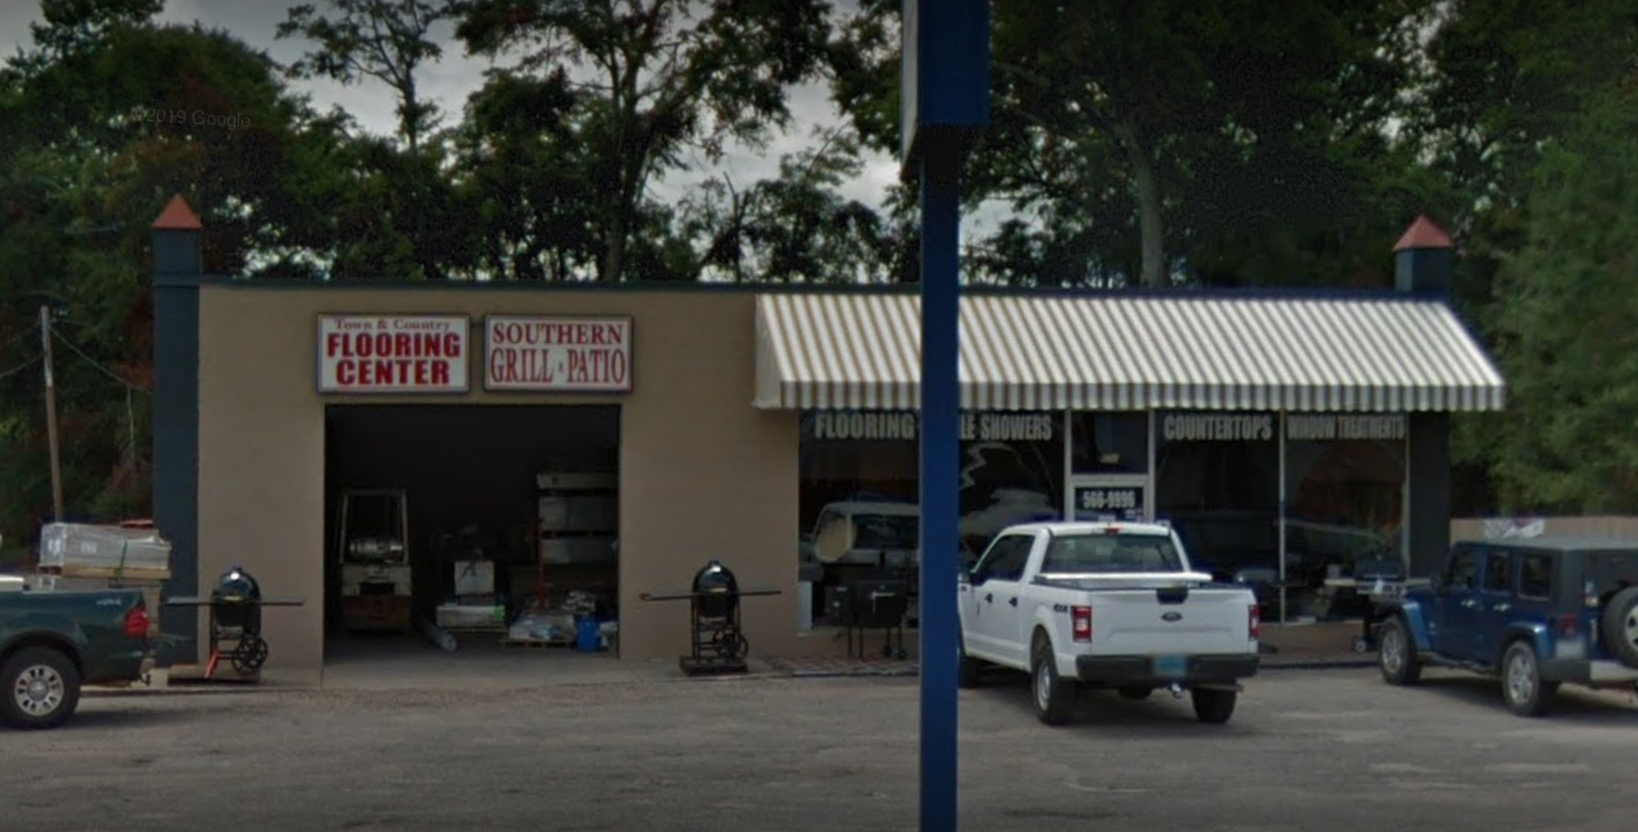 Town & Country Flooring Center - 600 N 3 Notch St, Troy, AL 36081